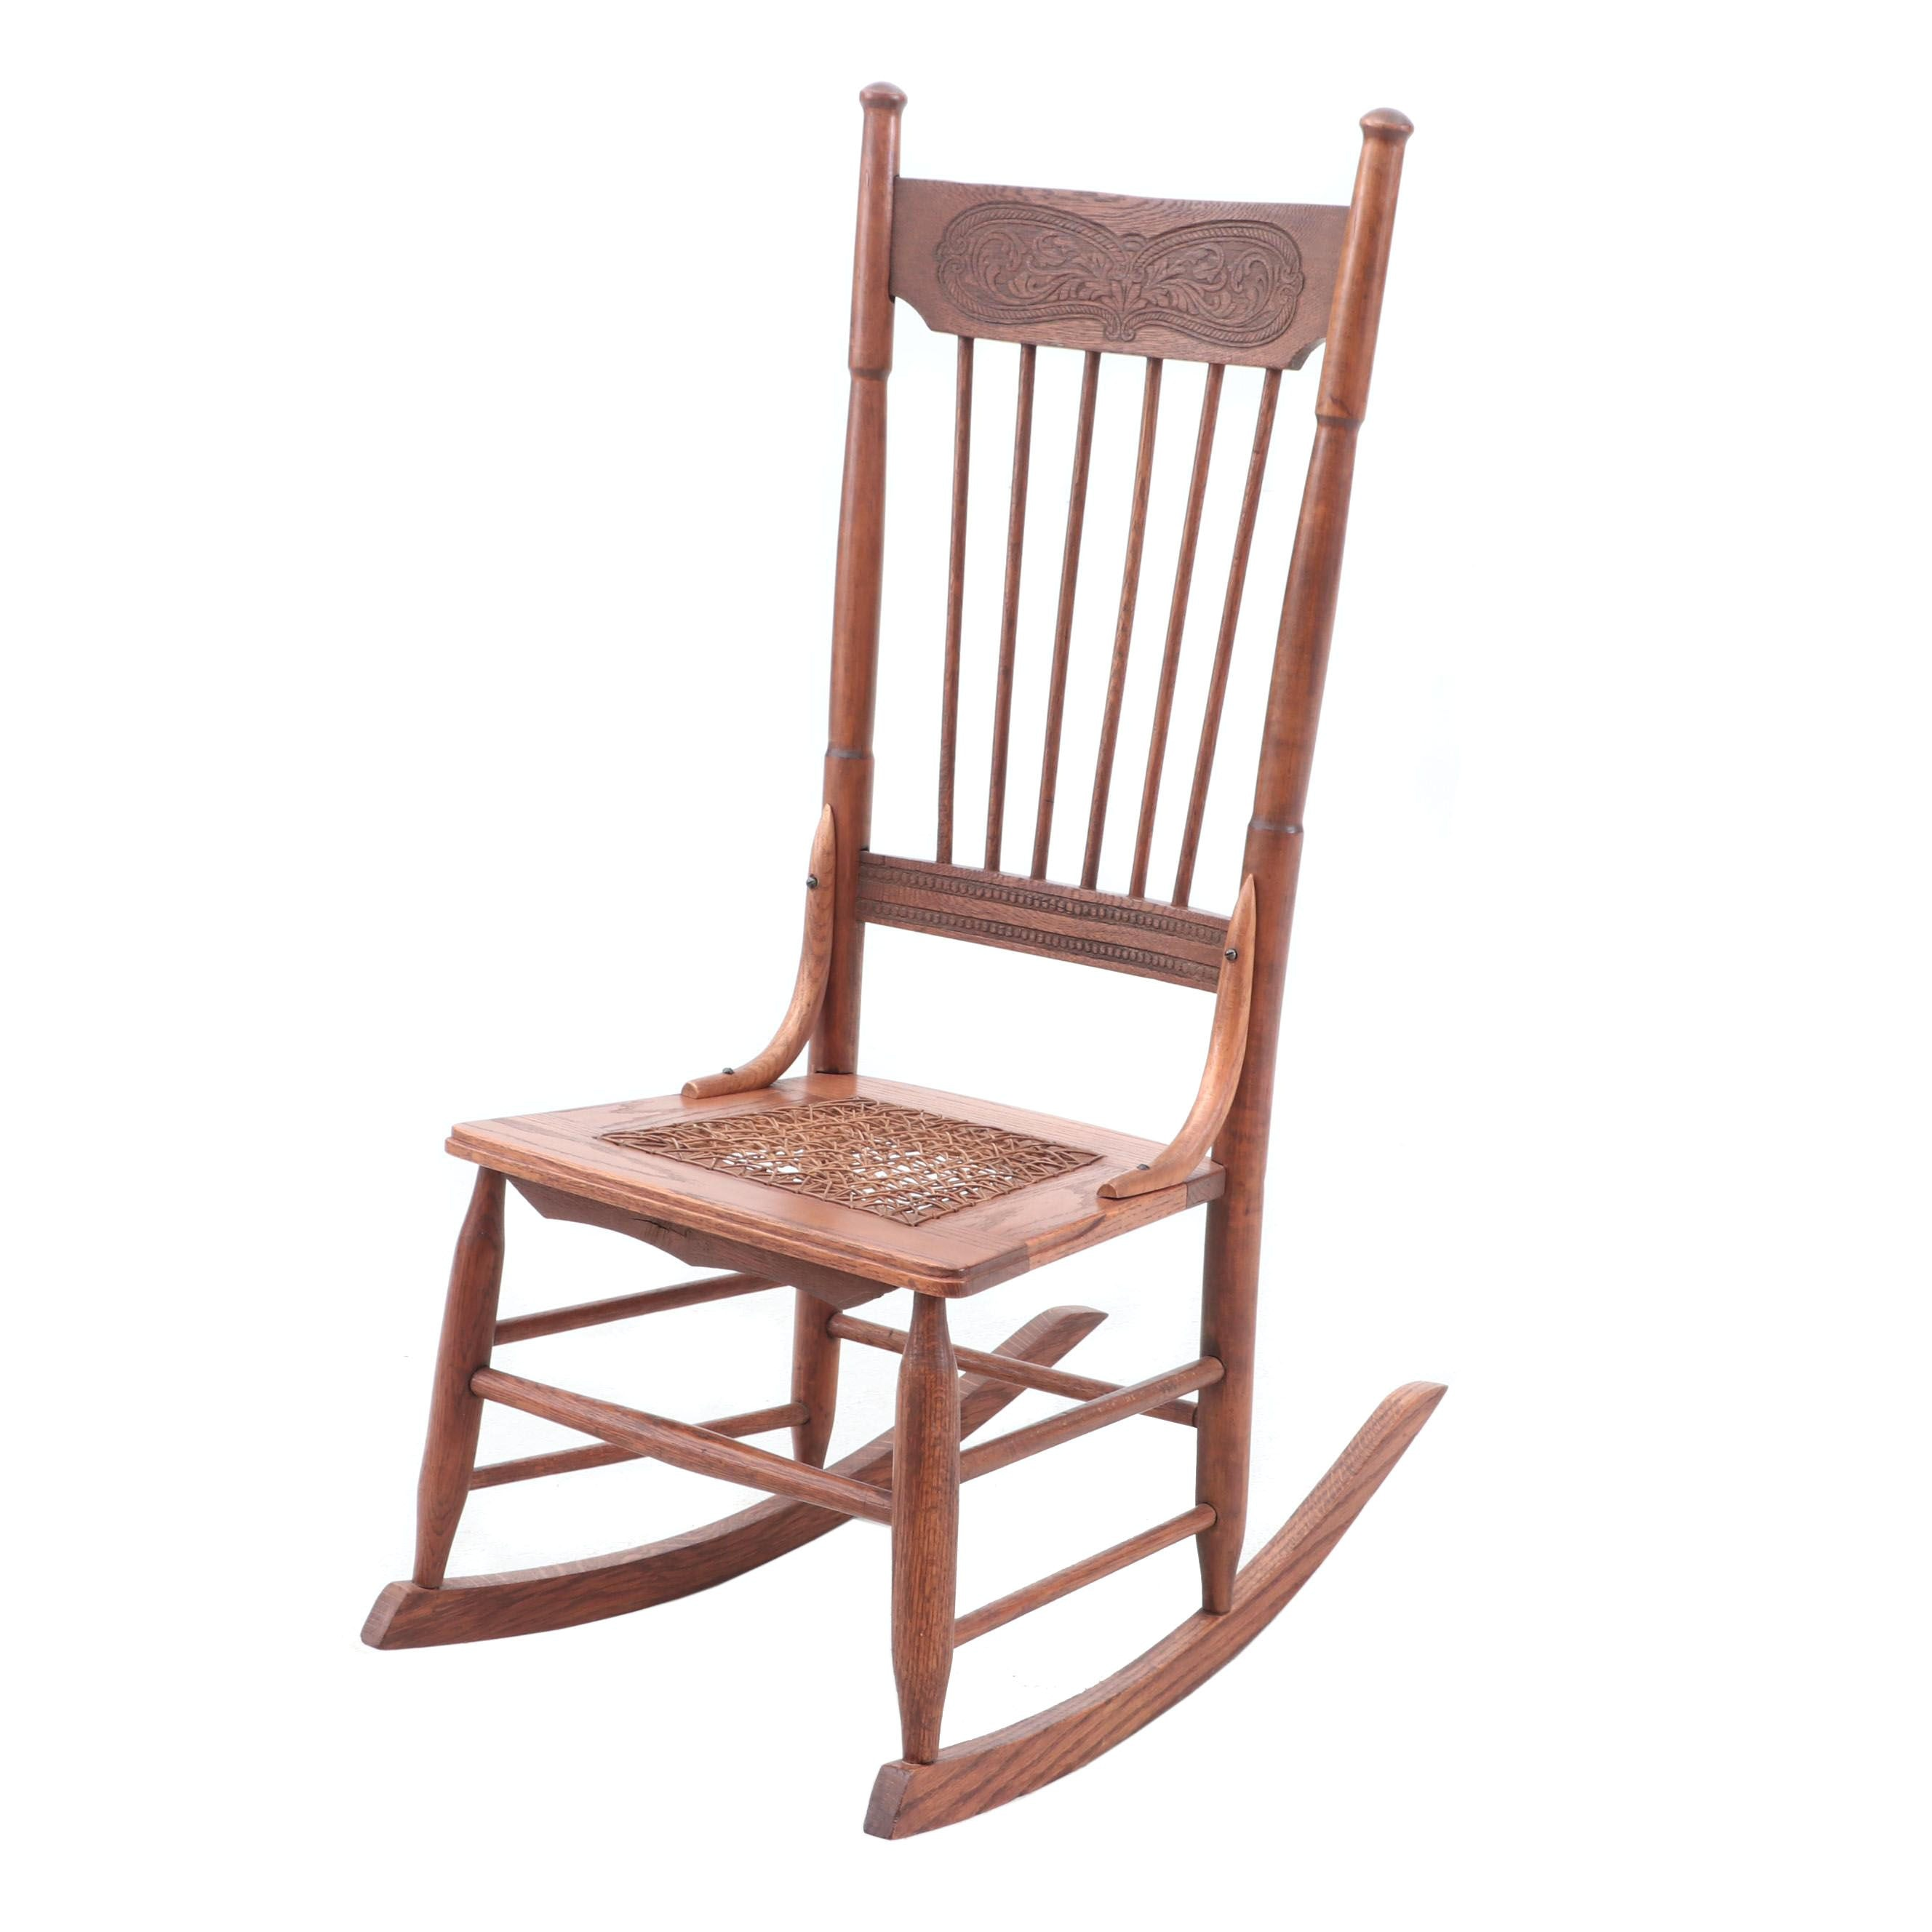 Oak Rocking Chair with Caned Seat